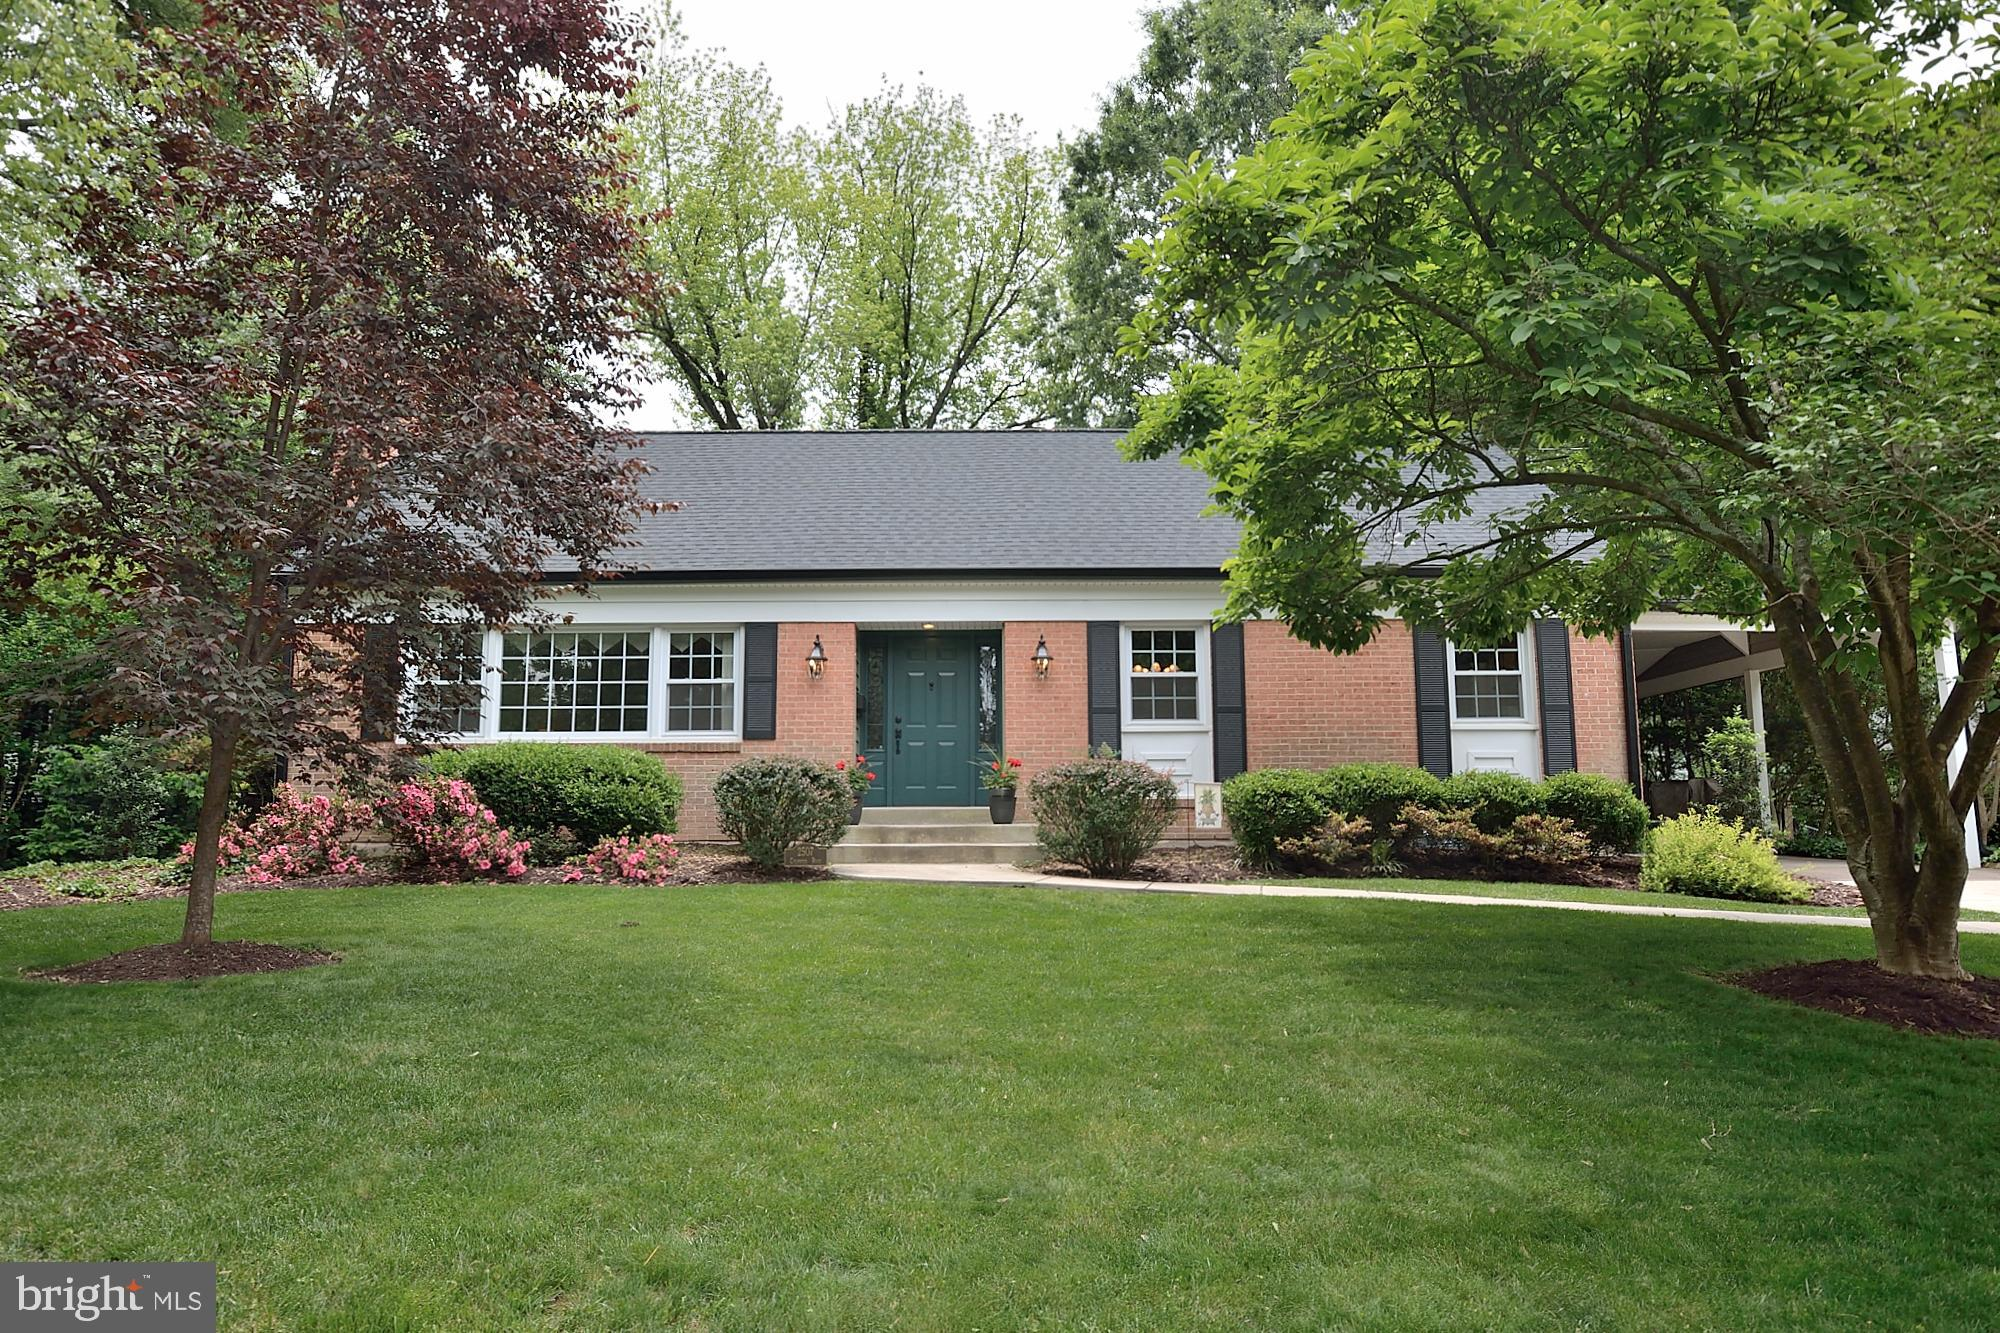 Largest Gramercy model with bonus family room off kitchen and screened porch. All major systems          recently updated. Fresh paint throughout*brand new stainless steel kitchen appliances and light quartz countertop*New roof & siding in 2018* Hardwood floors throughout main & upper level * New AC/Furnace 2018*Washer/Dryer 2017* Chimney liner and damper 2016* BDry Waterproofing system and brand new carpet in Lower Level 2019. Large storage/utility room/mud room for workshop walks out to back yard.  Upper level walk in attic   storage. Carport and off street parking. Meticulously landscaped lot with patio for entertaining and storage shed.